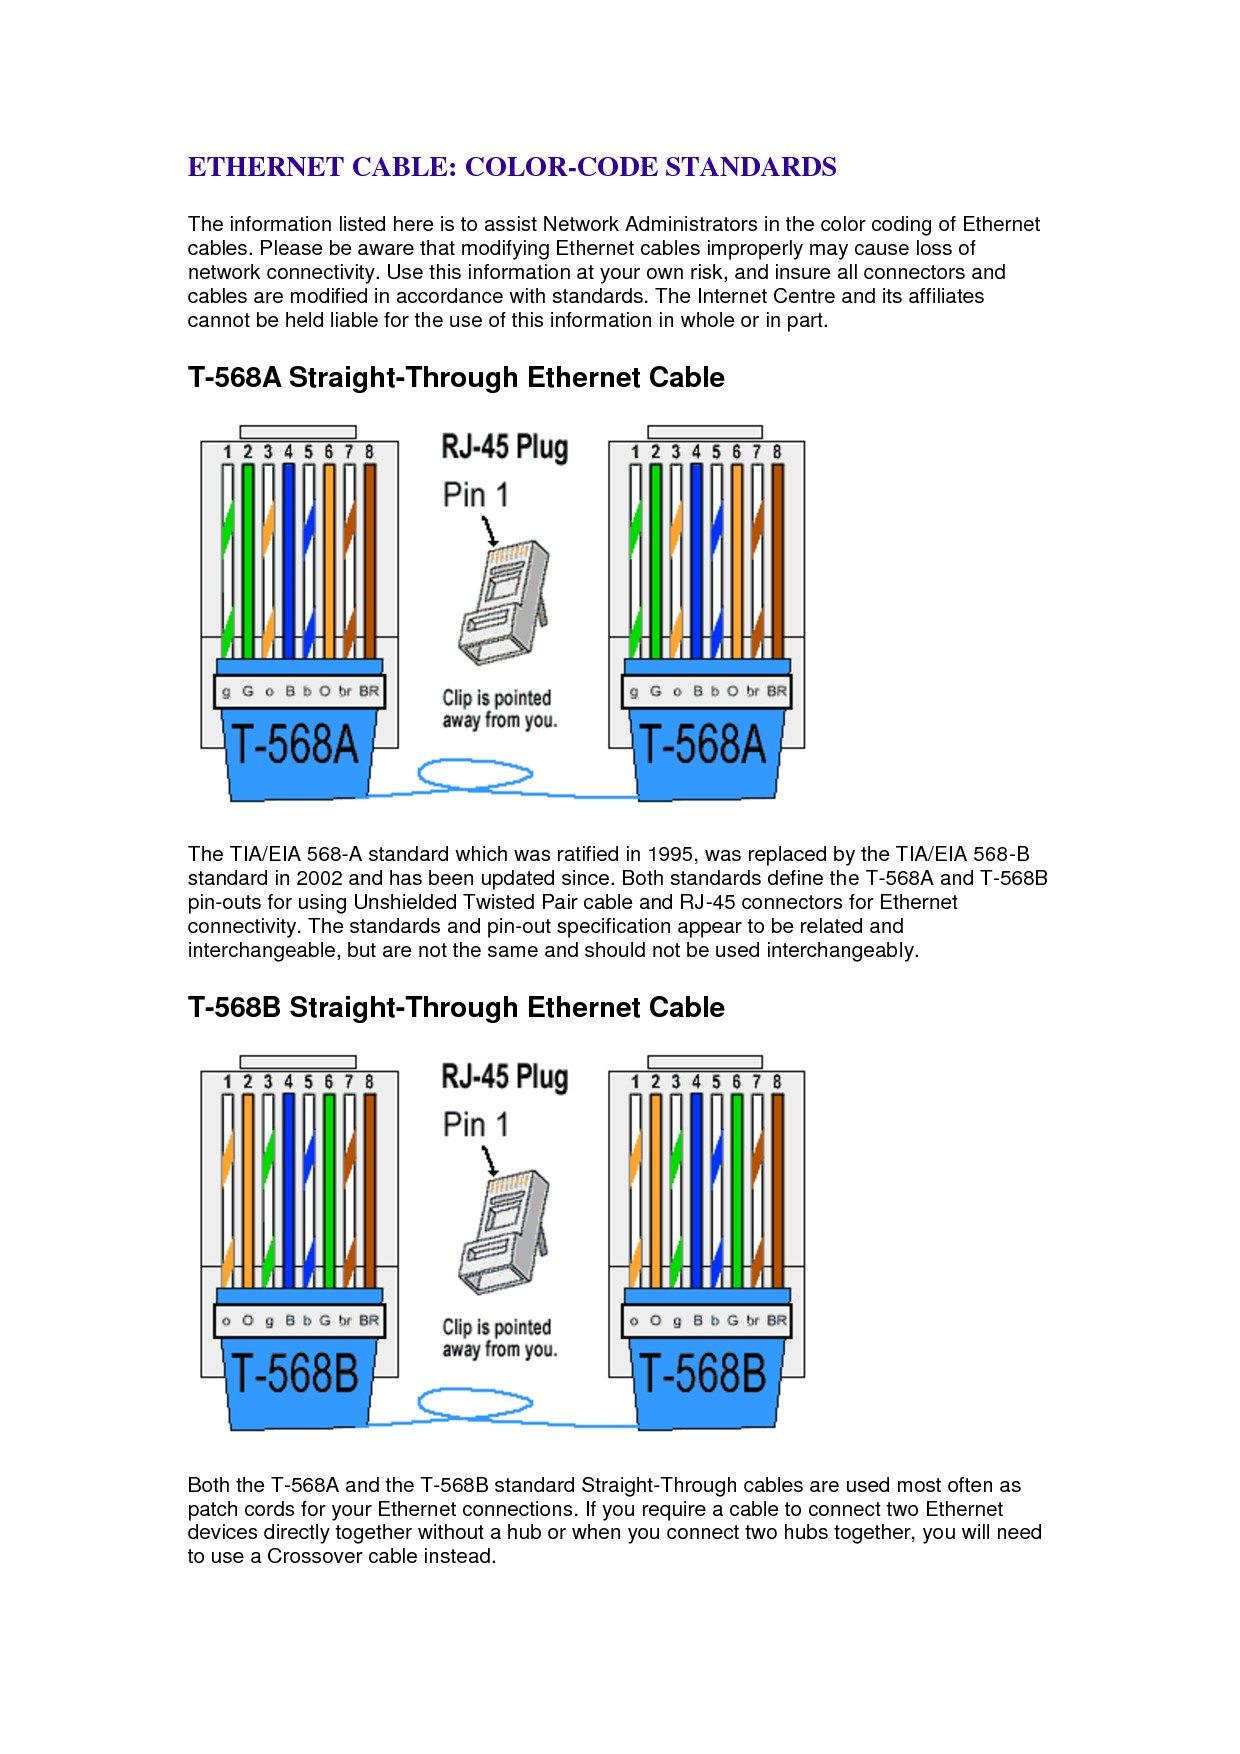 Cat 6 Wiring Diagram Best How to Crimp Cat6 Cable Contemporary Everything You Need to Of Cat 6 Wiring Diagram